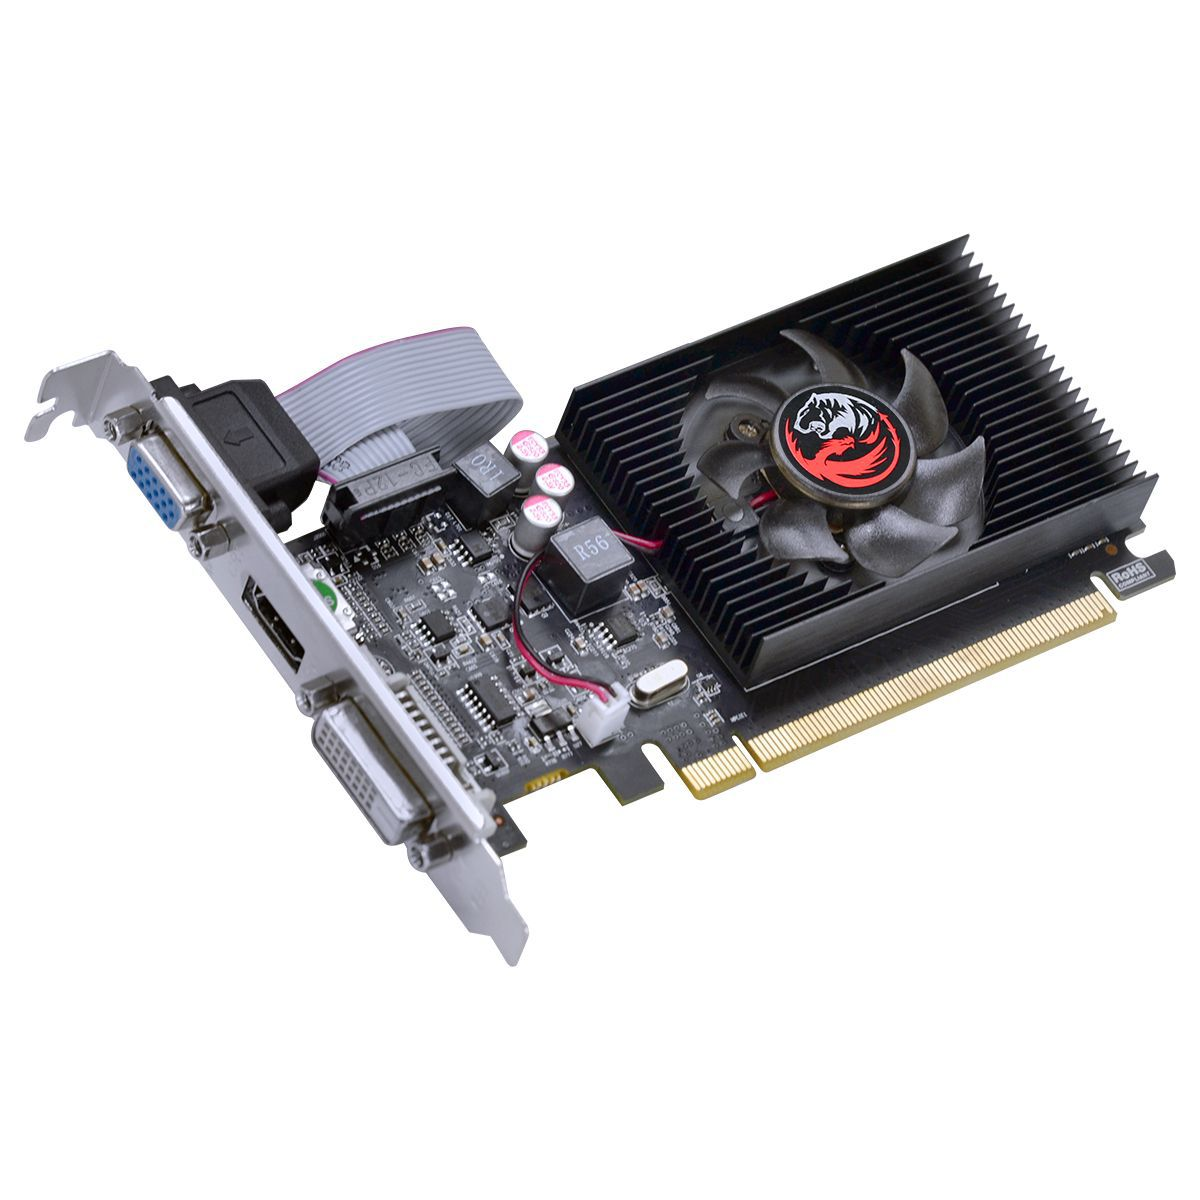 Placa de Vídeo Radeon HD 5450 1GB DDR3 64 Bits com Kit Low Profile Incluso PJ54506401D3LP - Pcyes